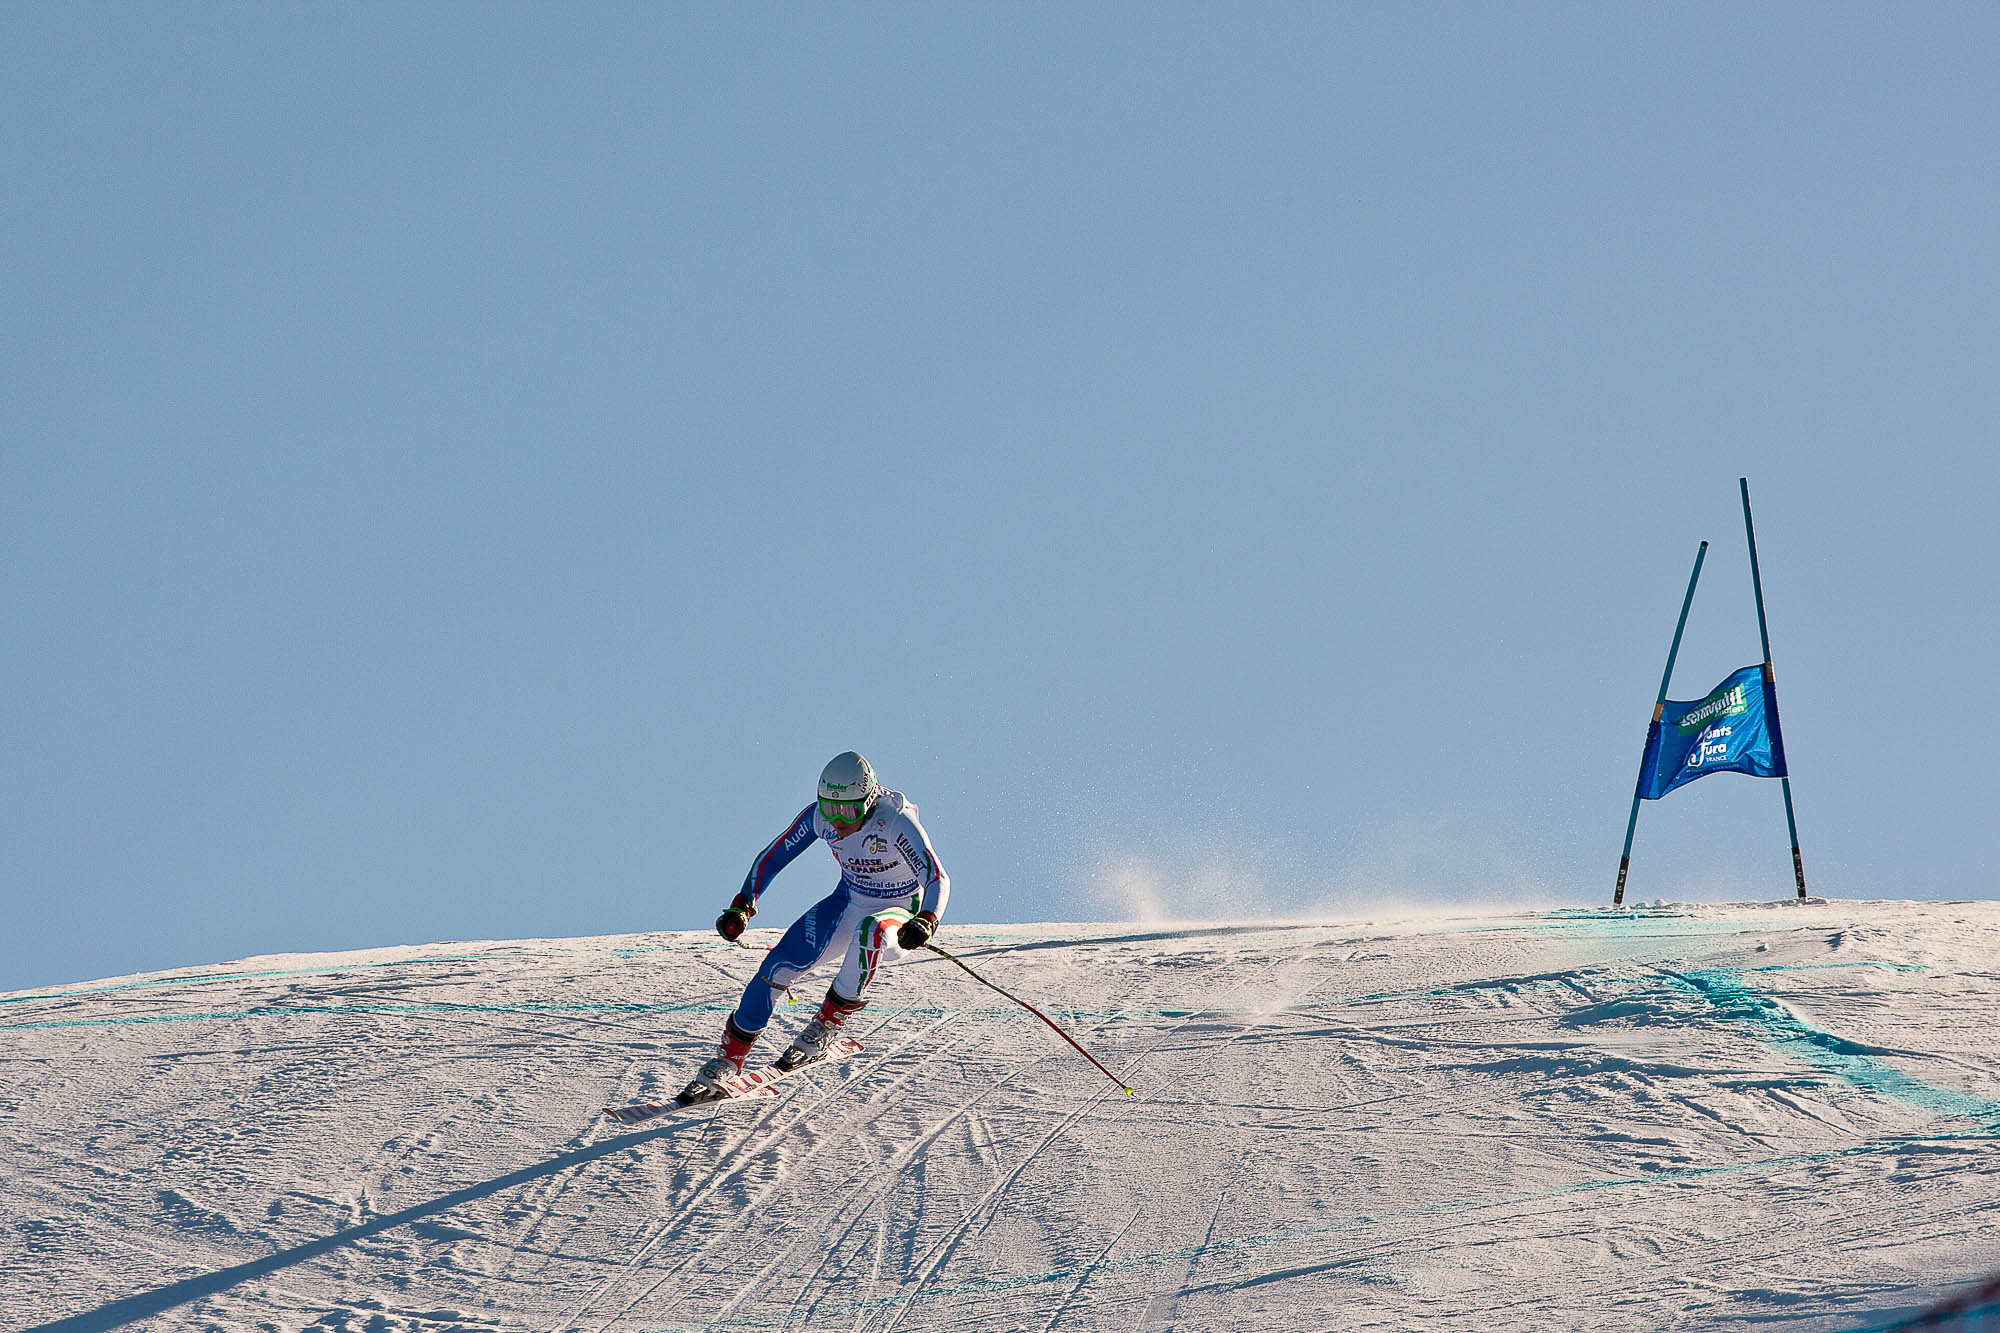 Coupe_Europe_ski_dames-54.jpg